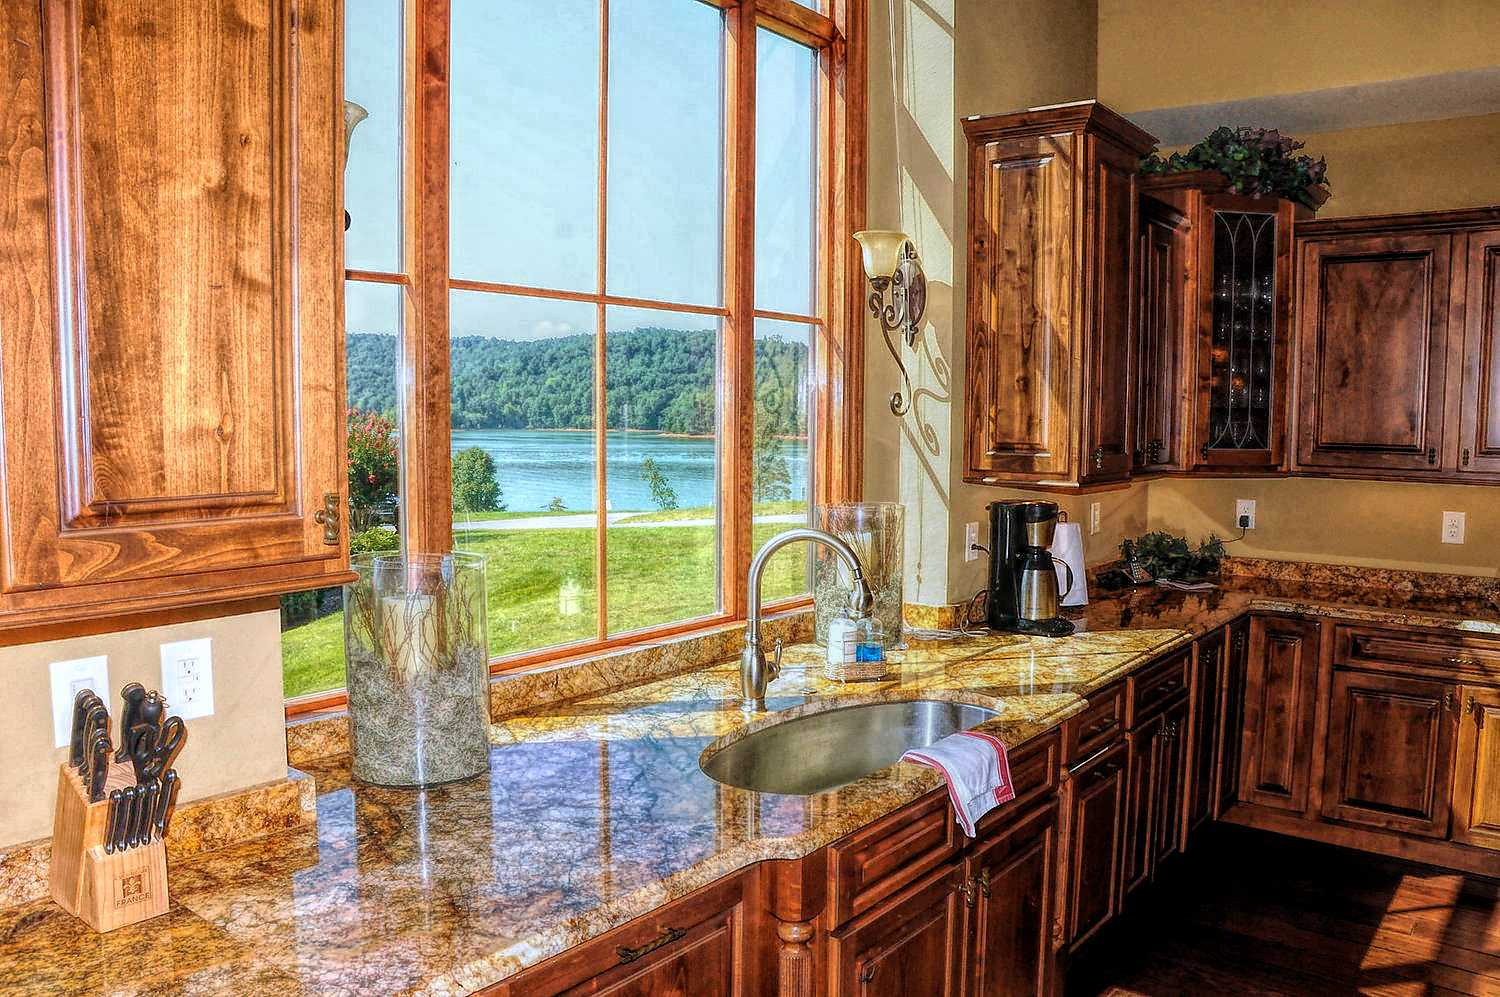 Gorgeous view of Norris Lake from the kitchen sink with Granite counter-tops